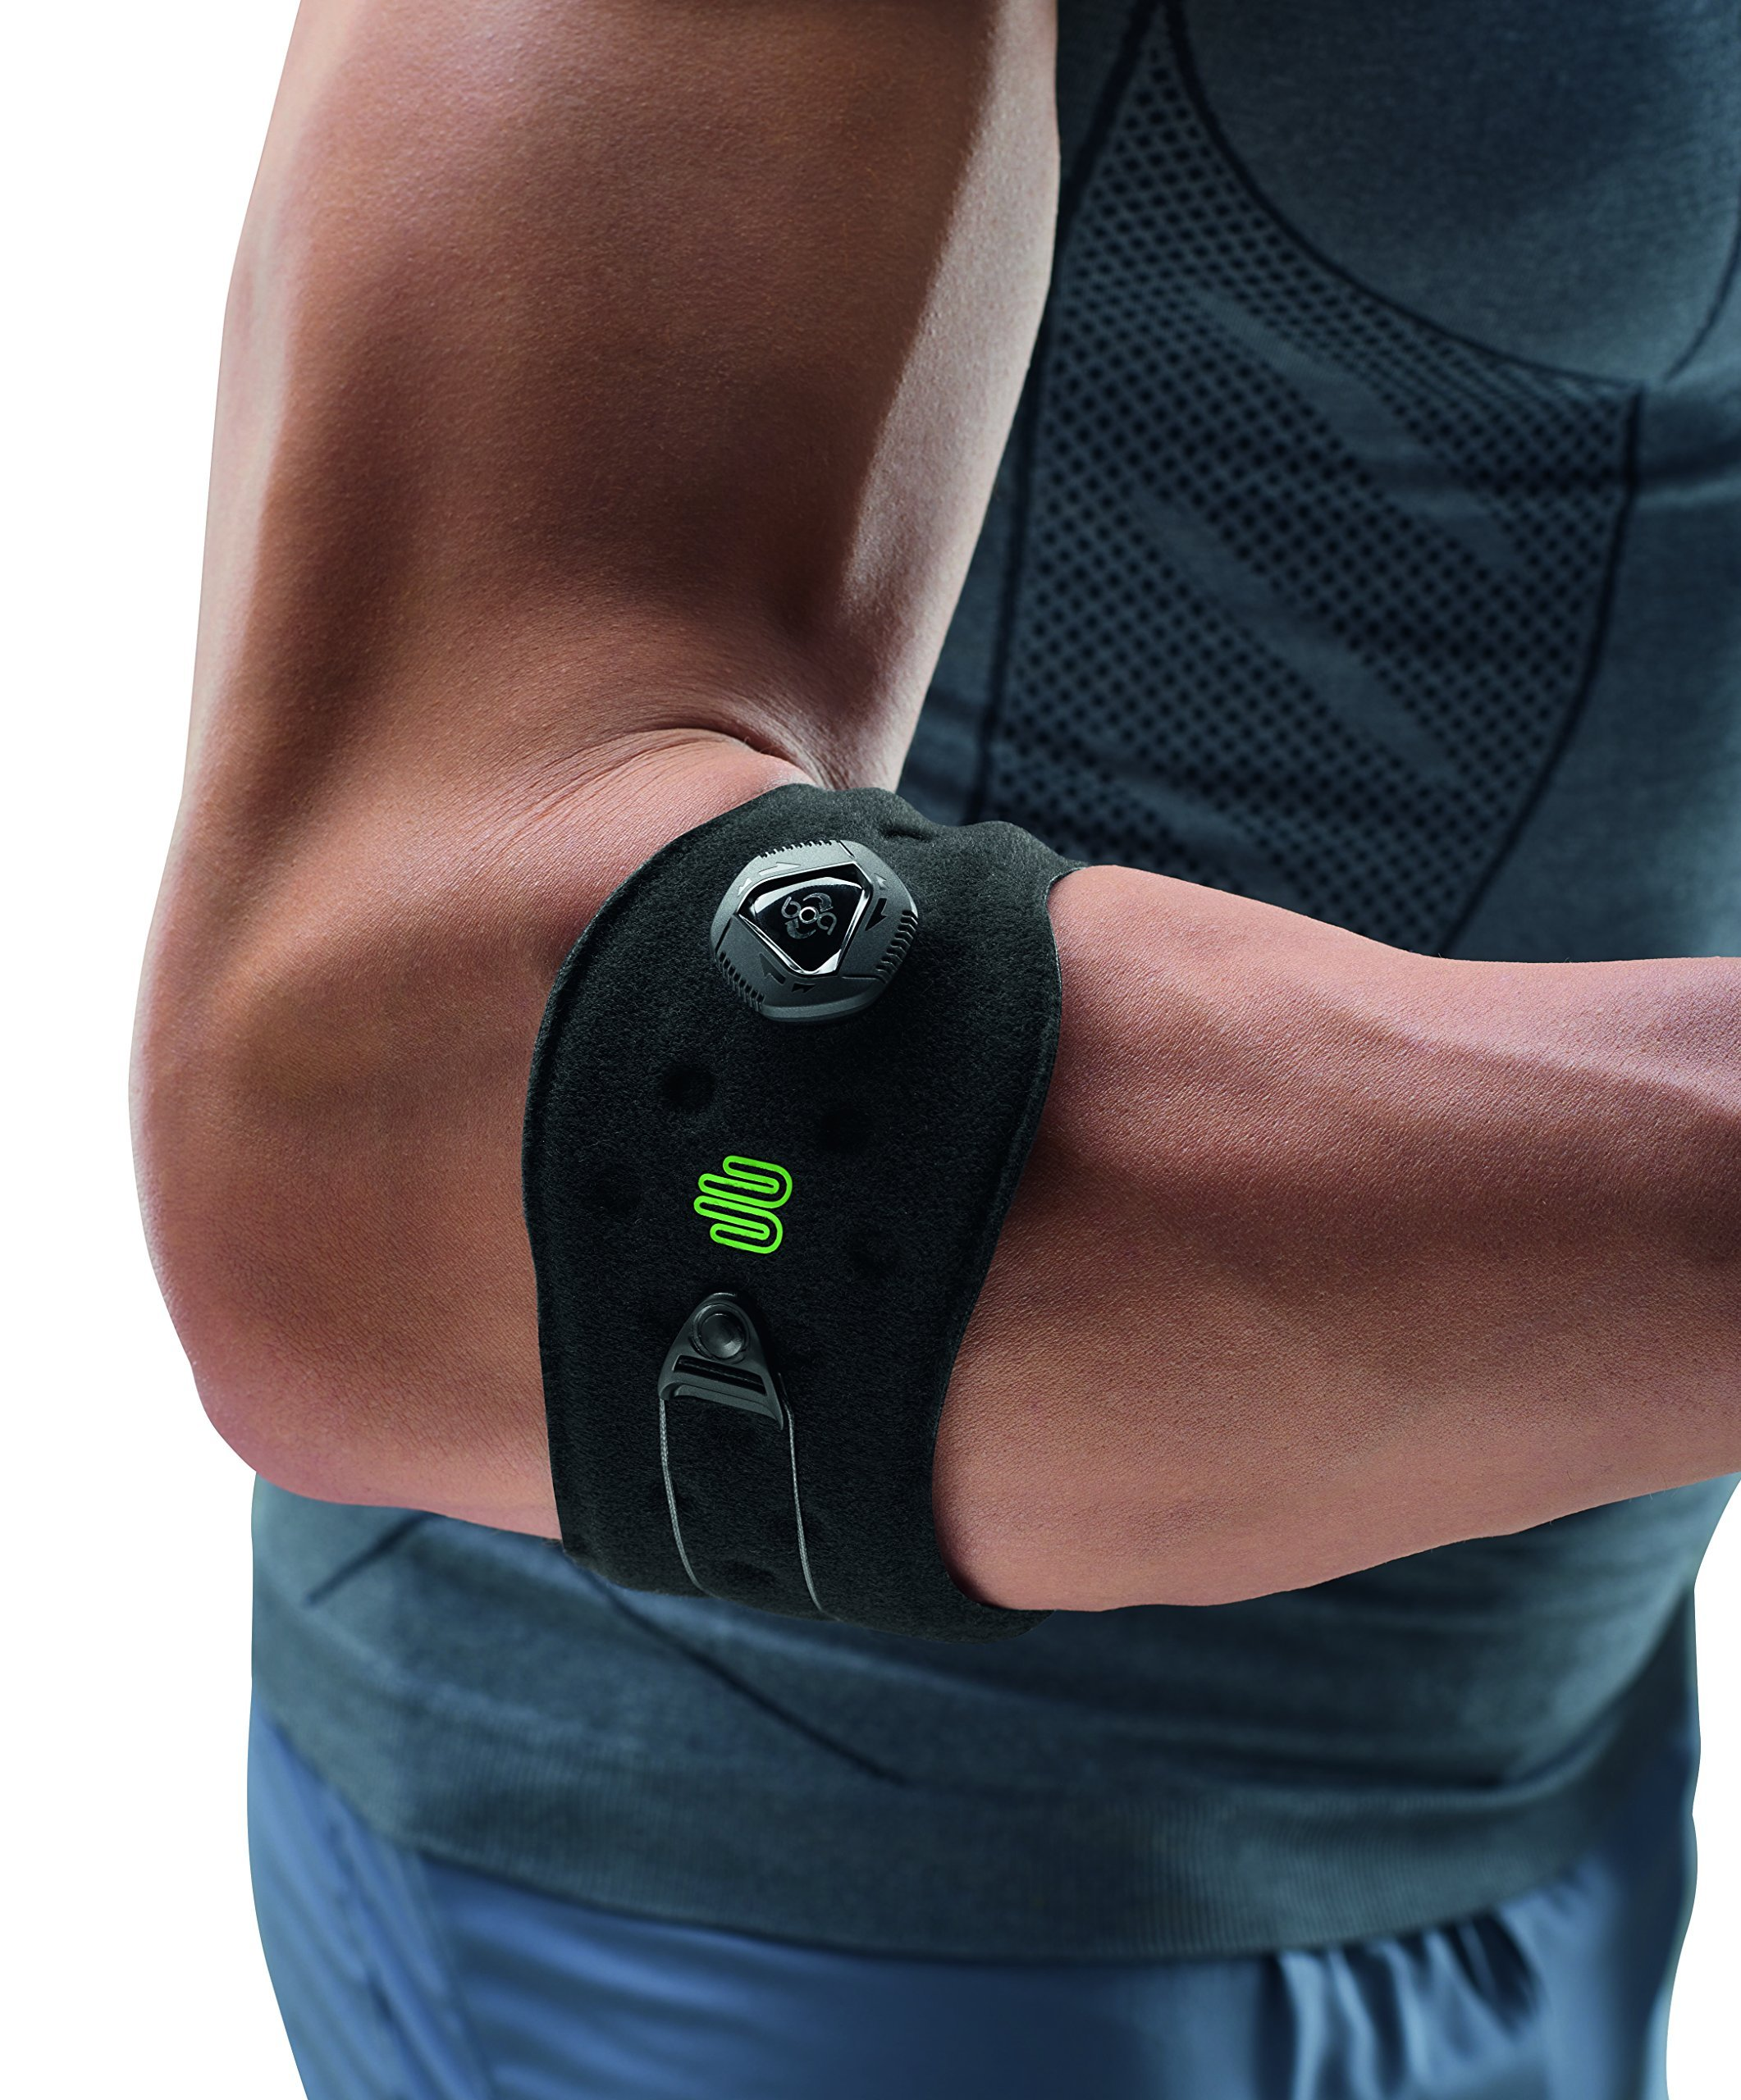 Bauerfeind Adjustable Sports Elbow Strap - Single, Black, One Size - Forearm Pain Relief from Golfers and Tennis Elbow - Five Point Pad for Direct Pressure on Tendon - Boa Closure System by Bauerfeind